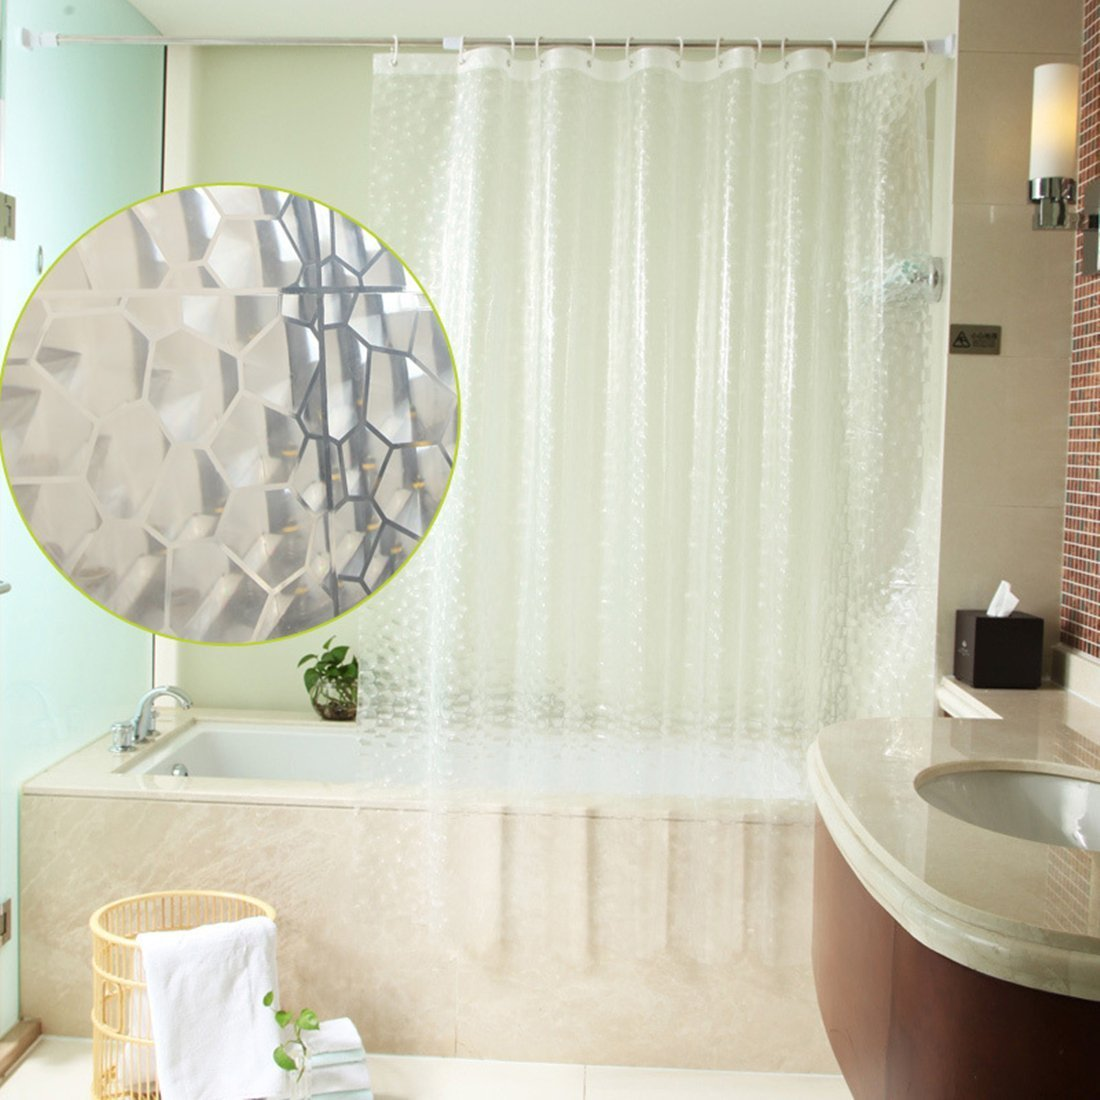 Clear fish shower curtain - Cl Clear Fish Shower Curtain Amazon Com S Zone 72 Inch By 36 Inch 3d